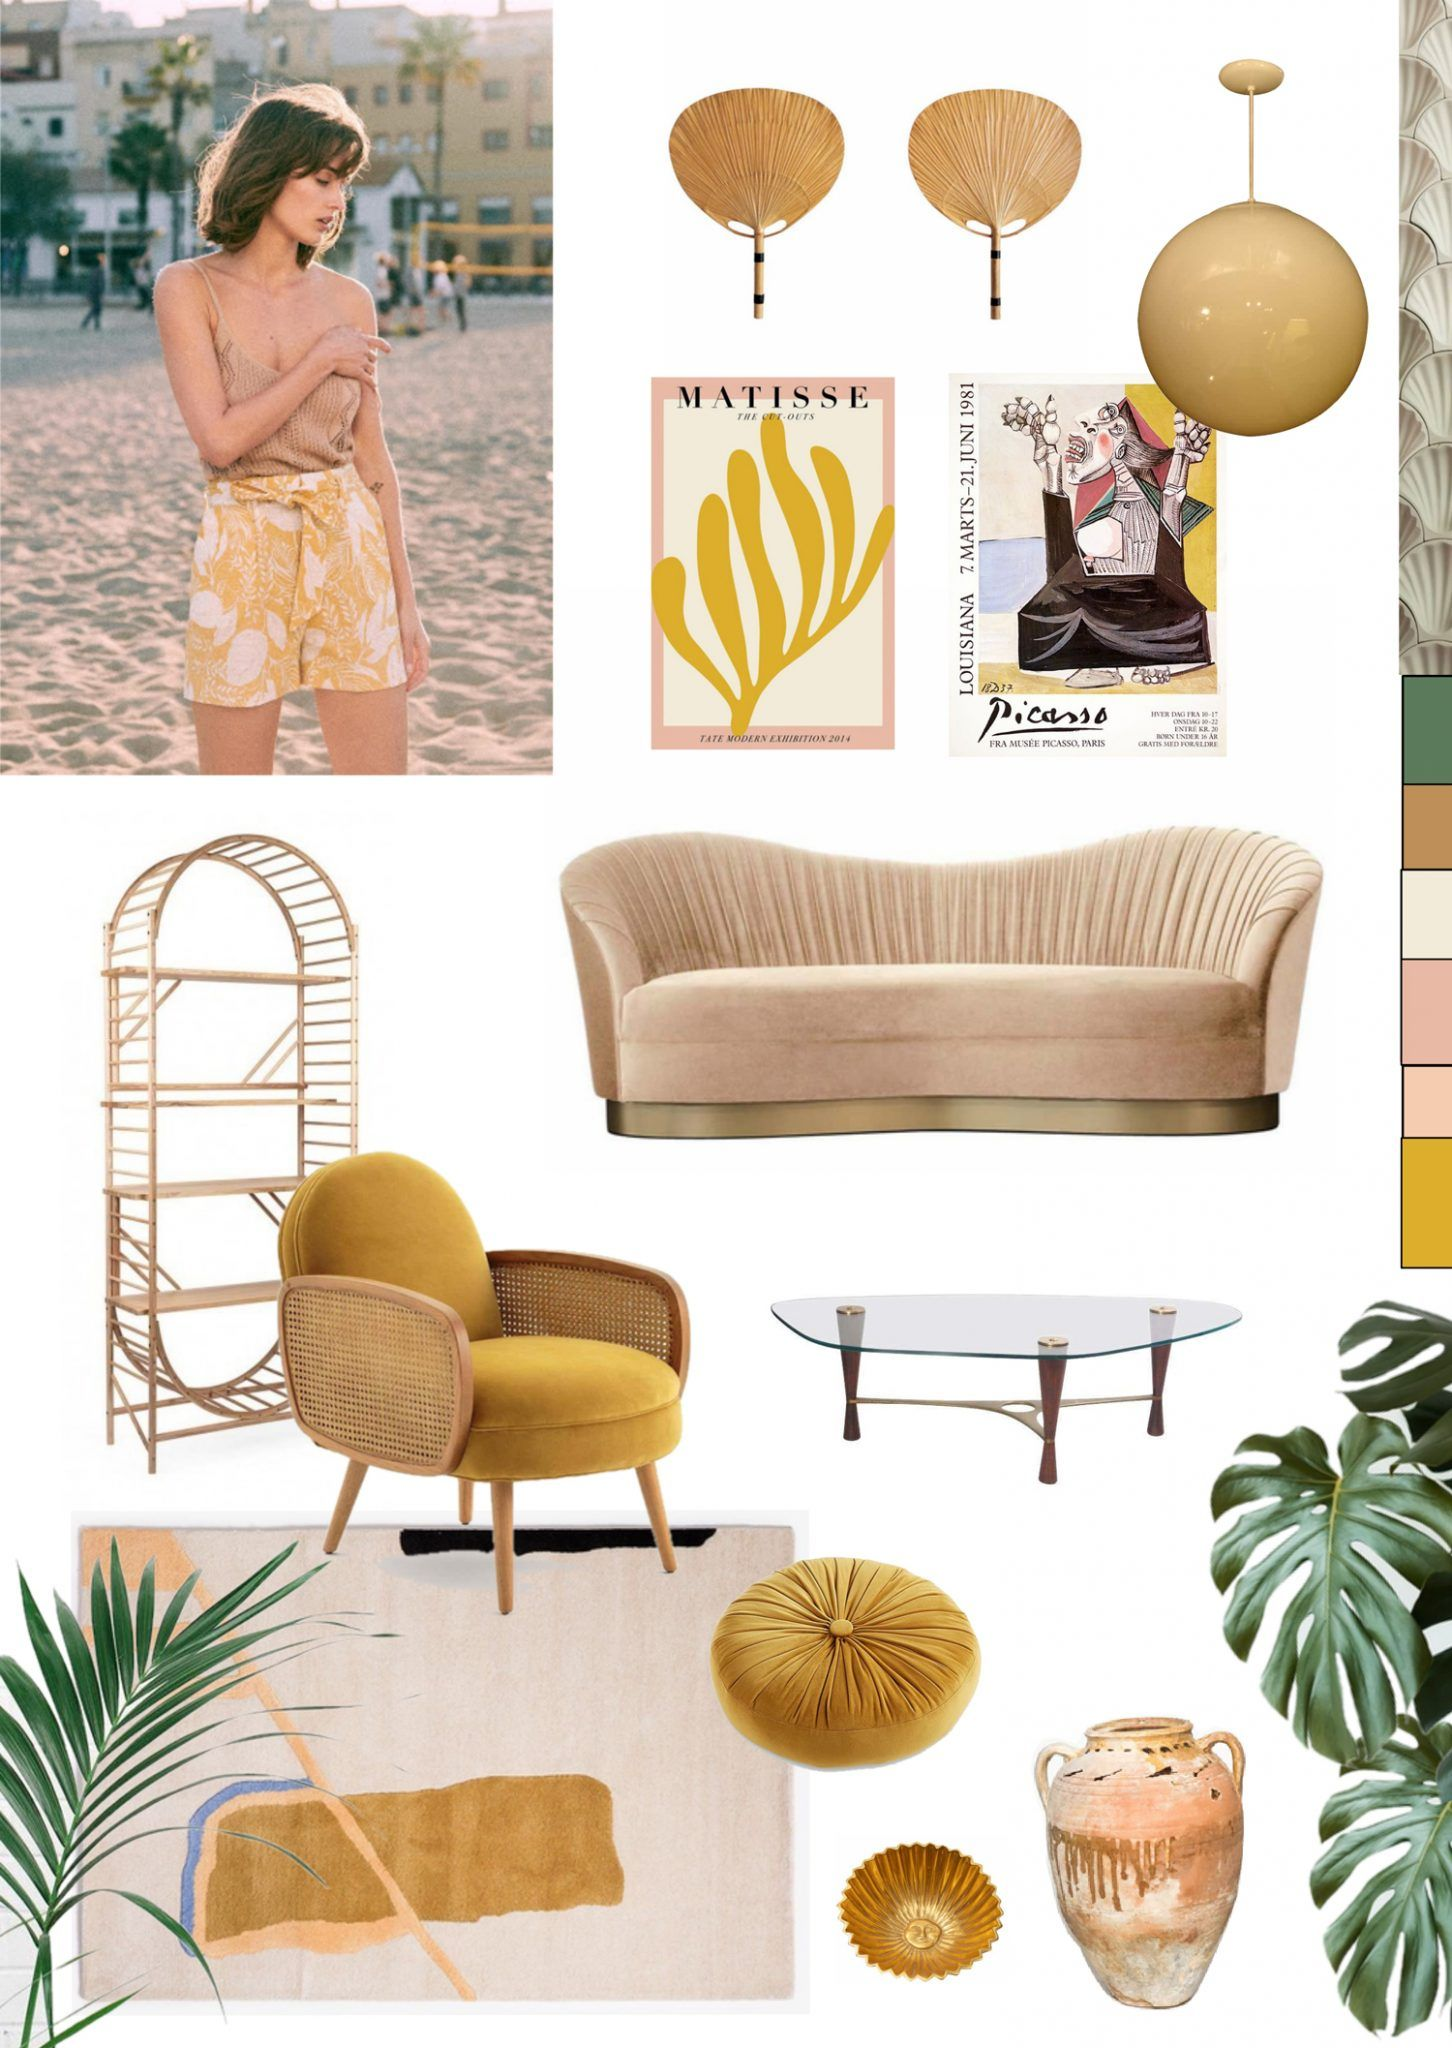 Furniture Trends 2020 2021 The Return Of The Vintage In 2020 Trending Decor Furniture Trends Home Decor Trends